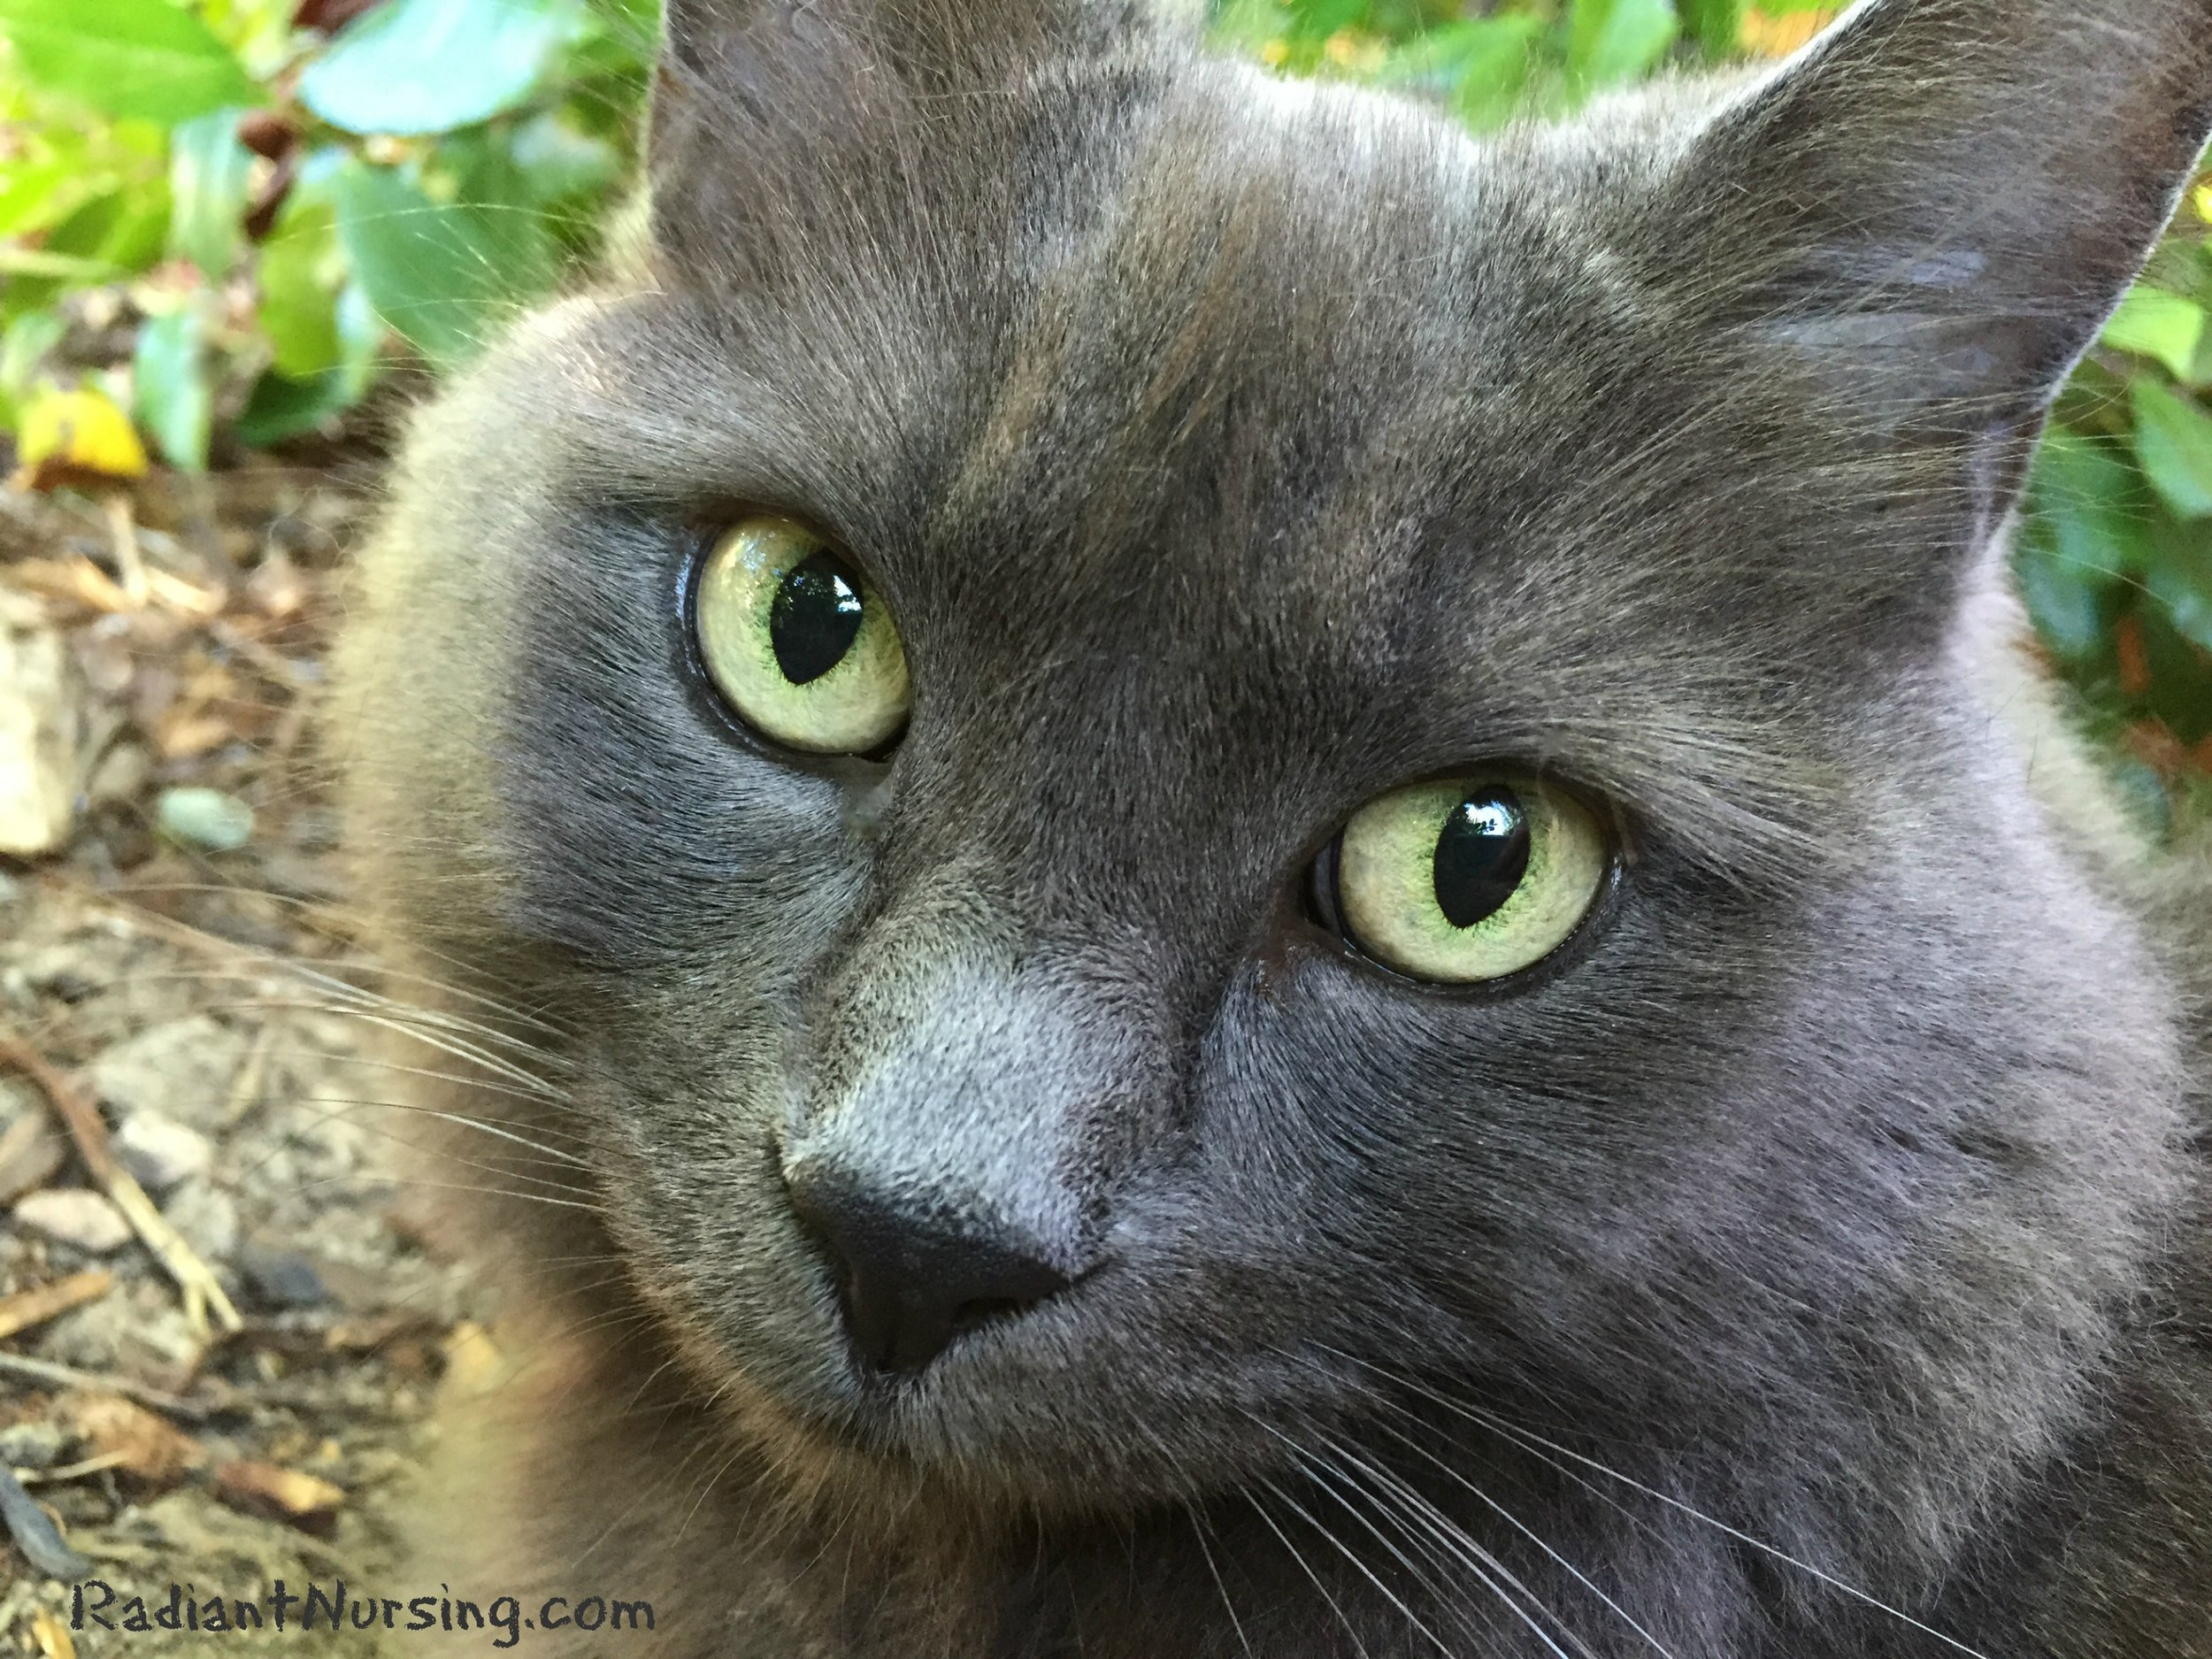 Ariel, the neighbor kitty, with her sweet grey face.